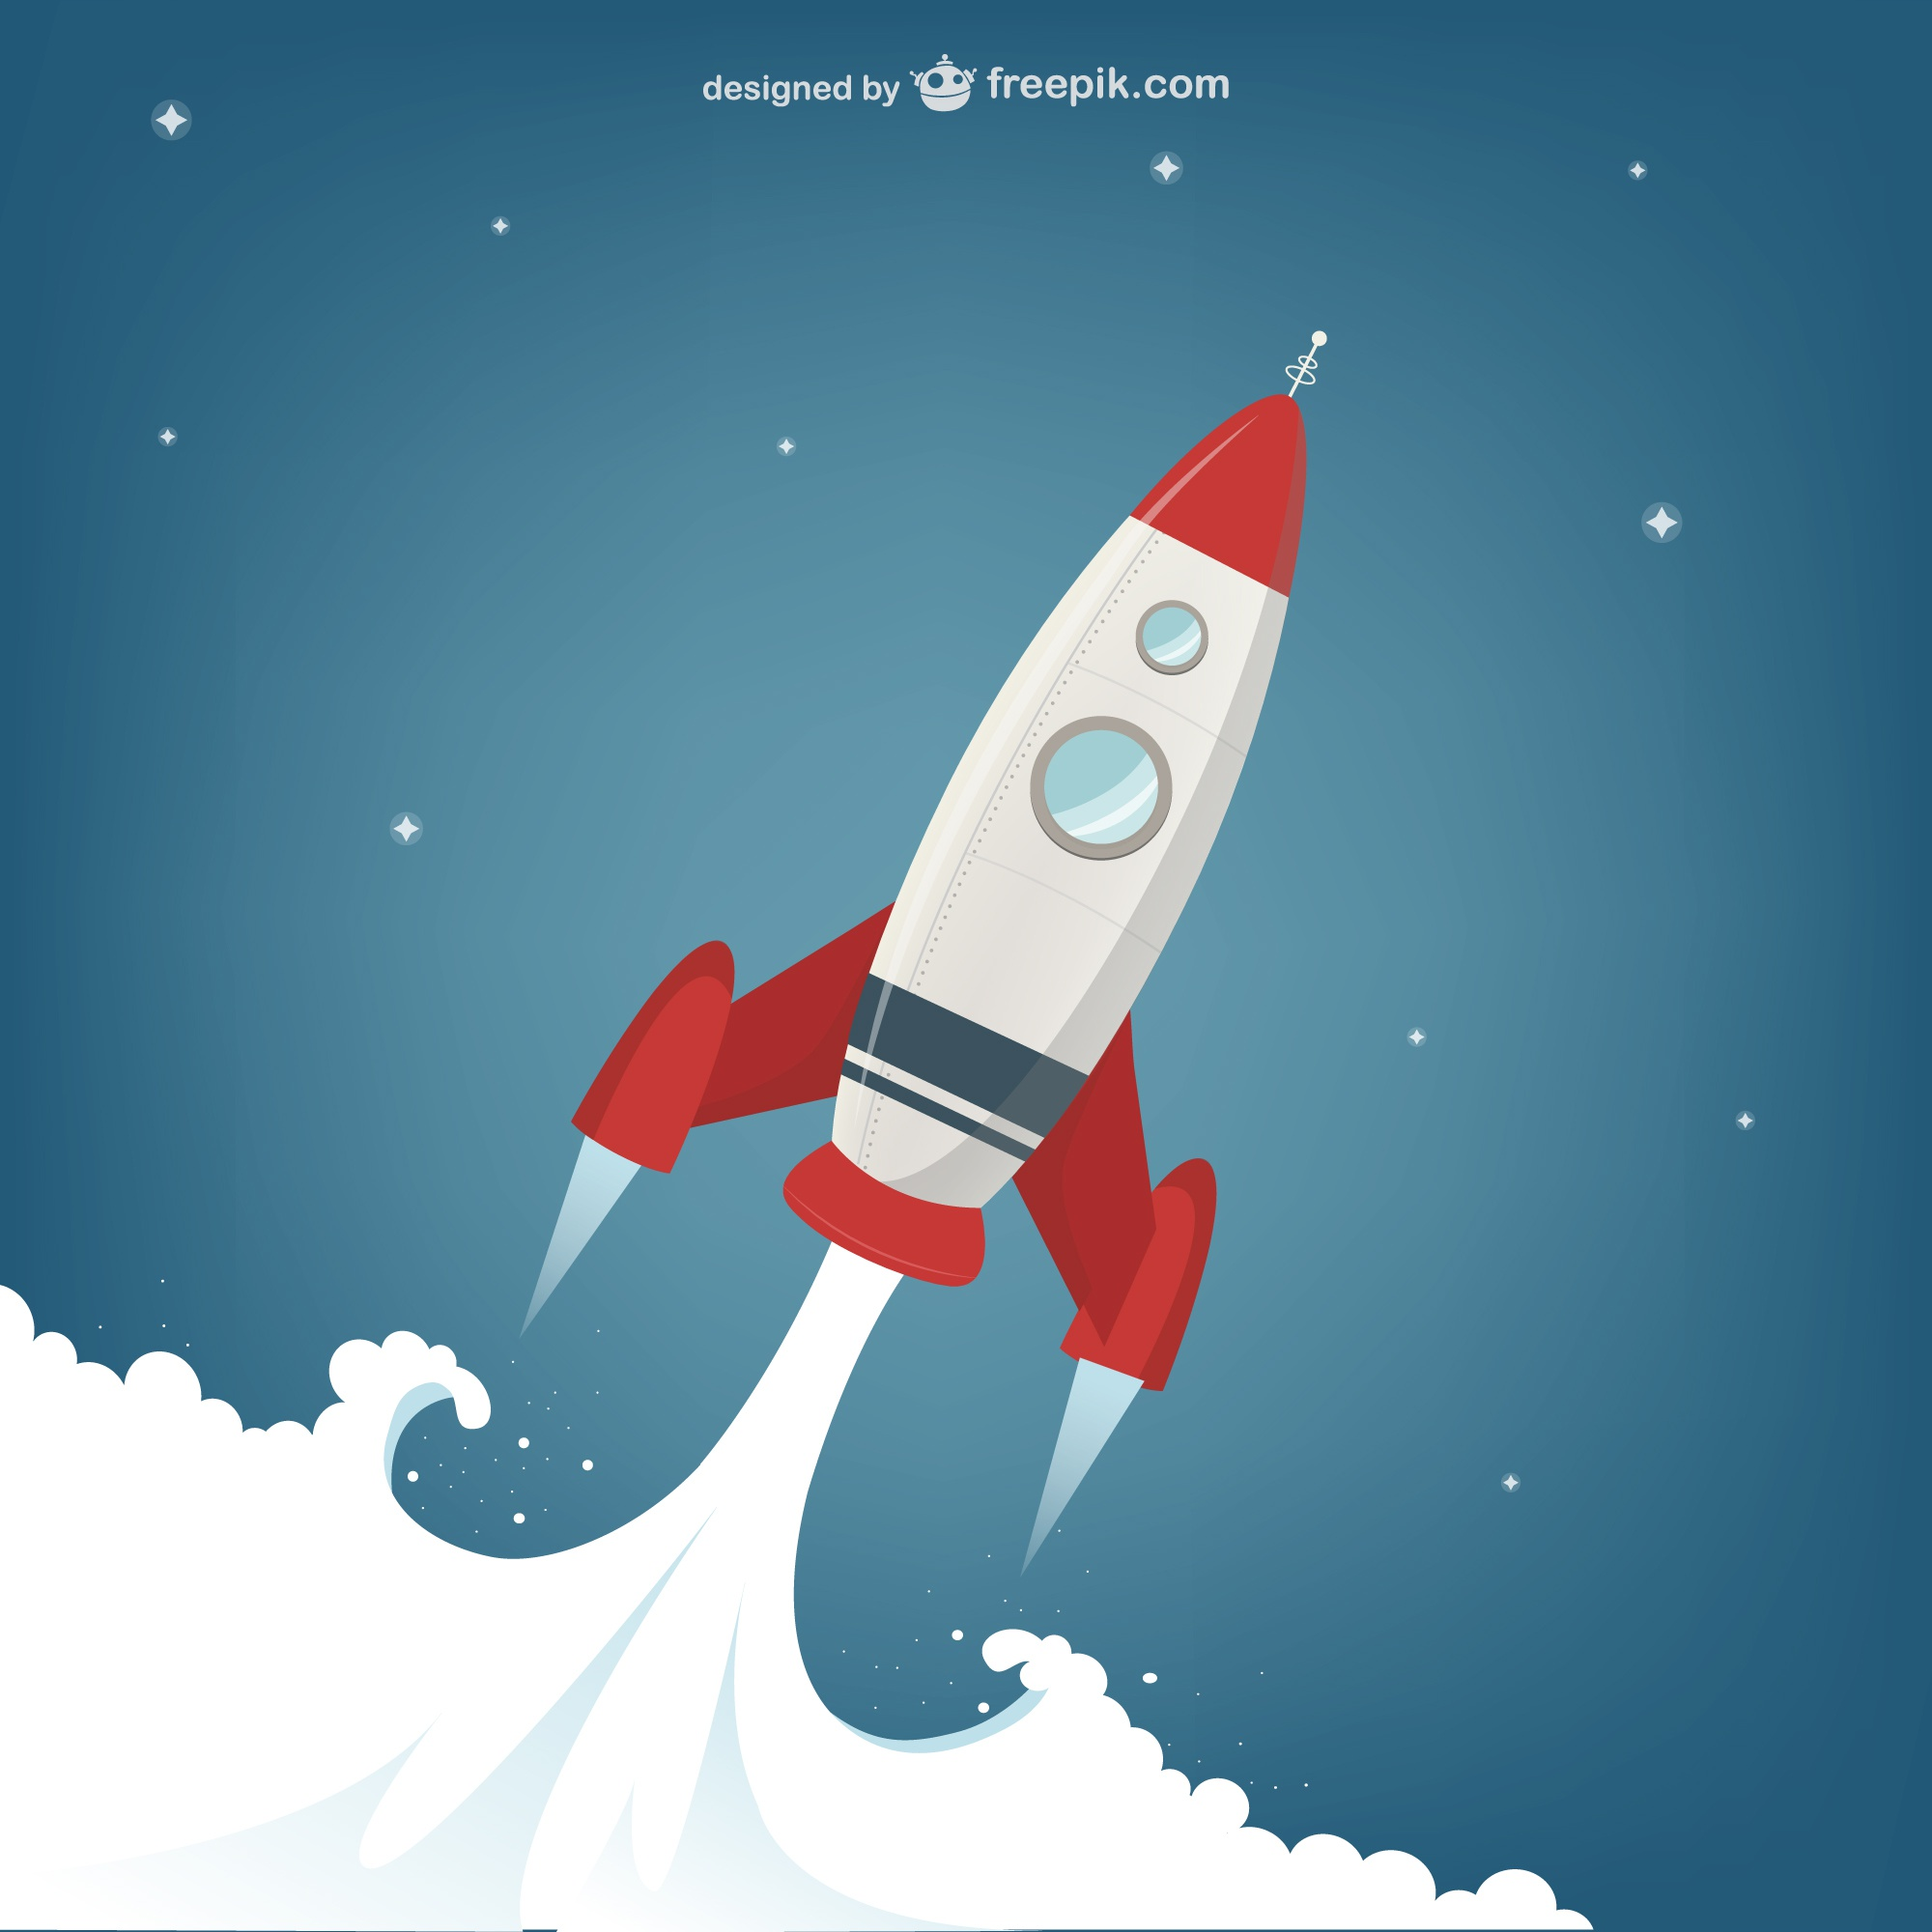 Rocket-Illustration Vektor-